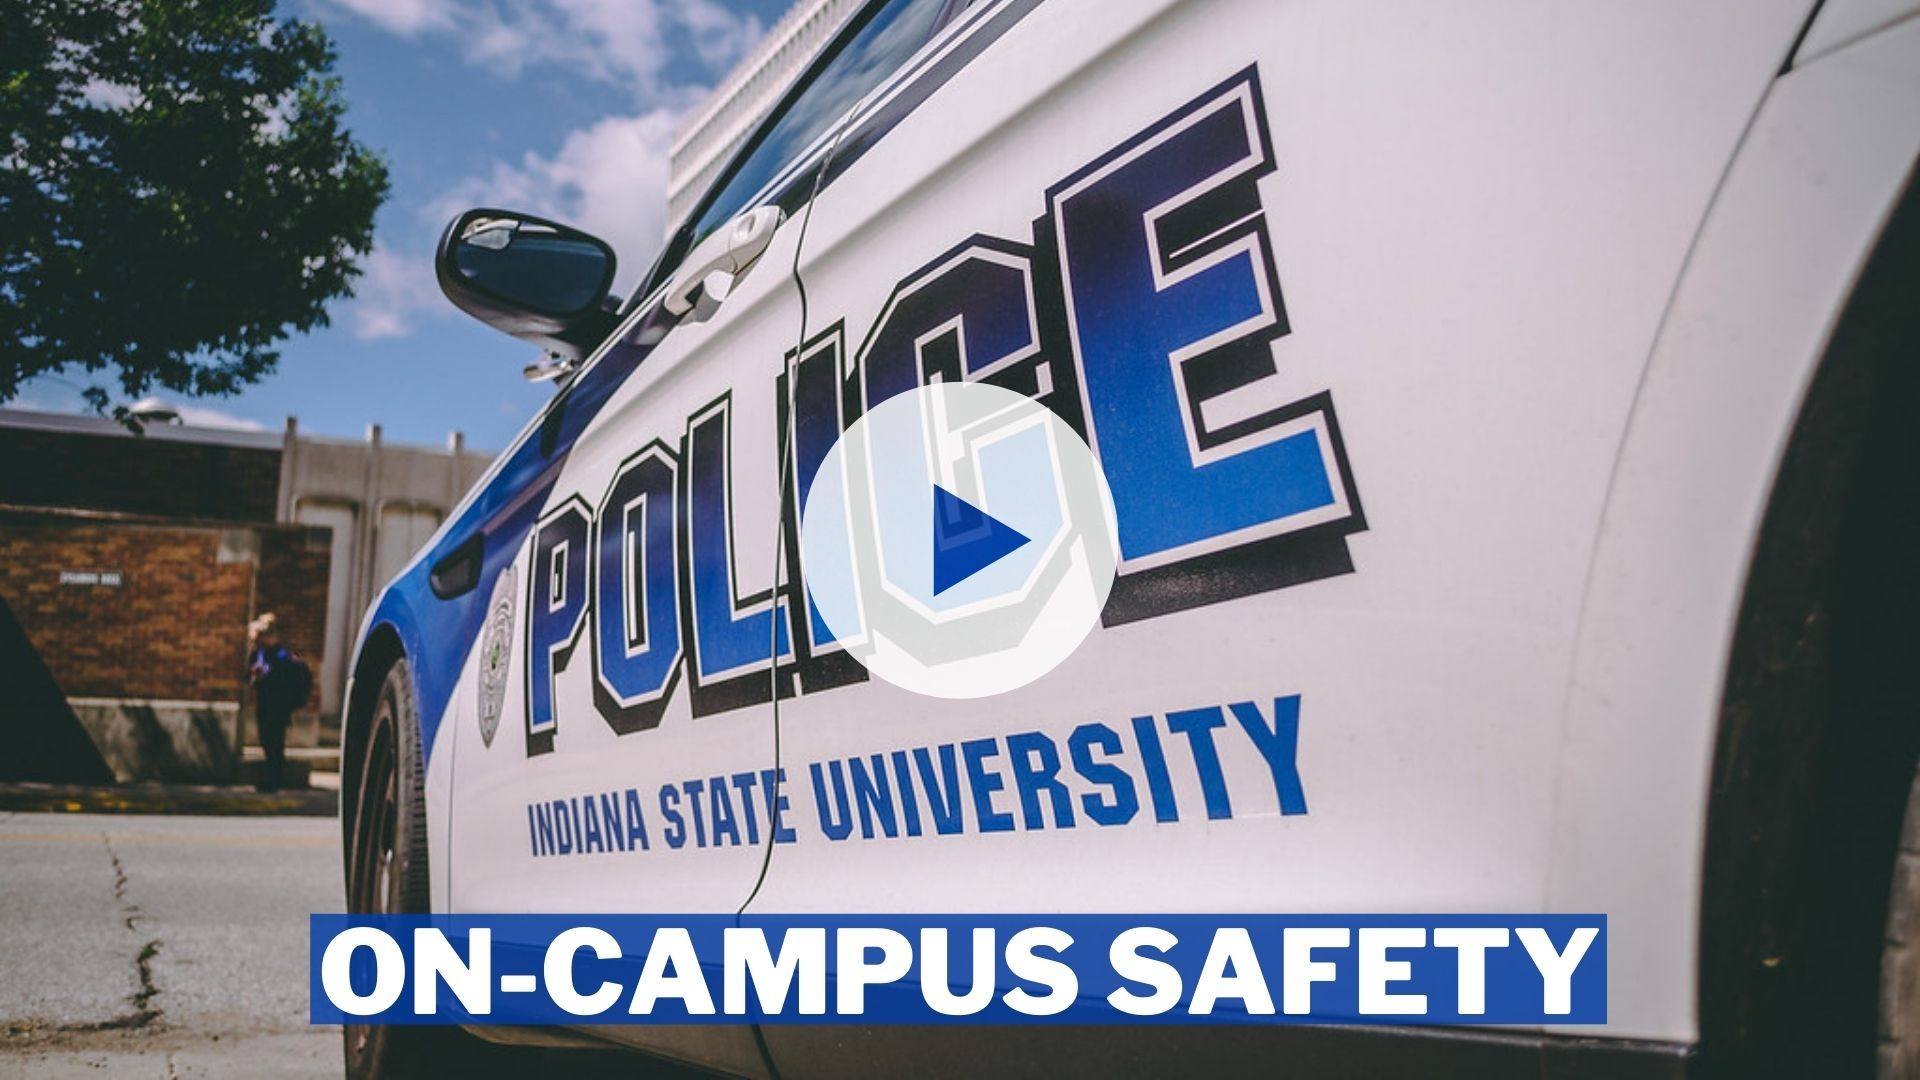 On-Campus Safety